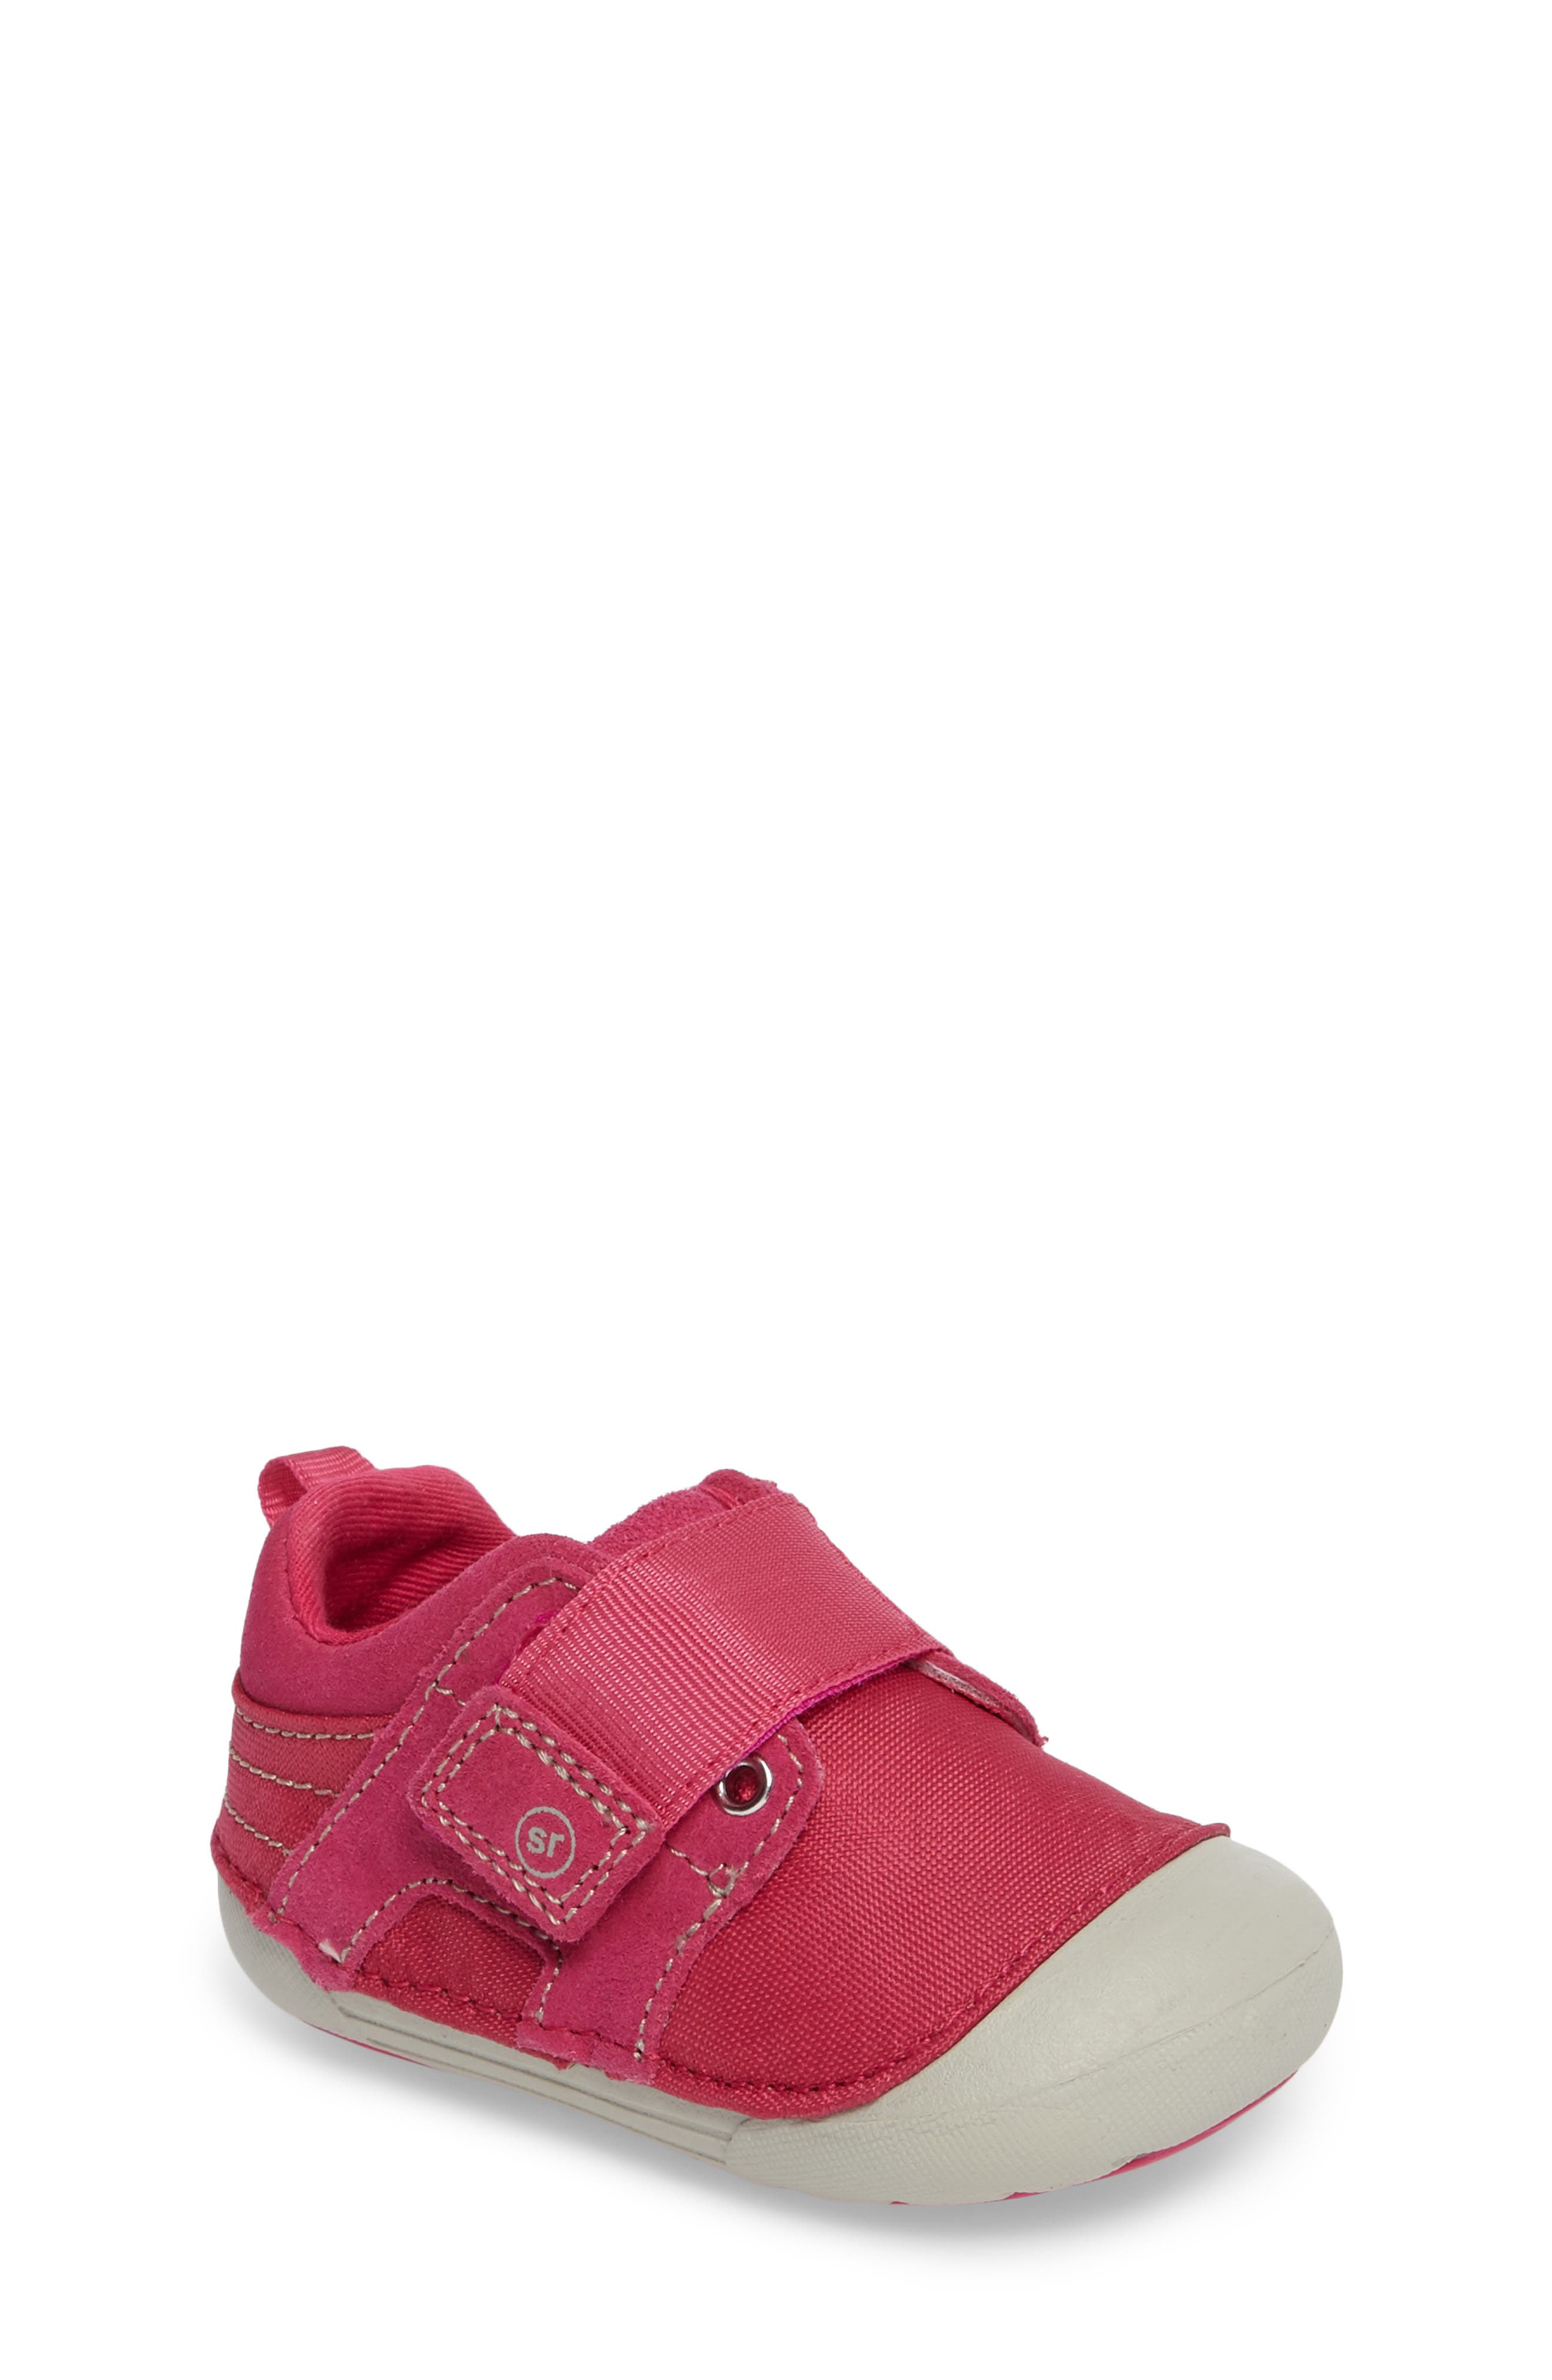 Alternate Image 1 Selected - Stride Rite Soft Motion™ Cameron Sneaker (Baby & Walker)